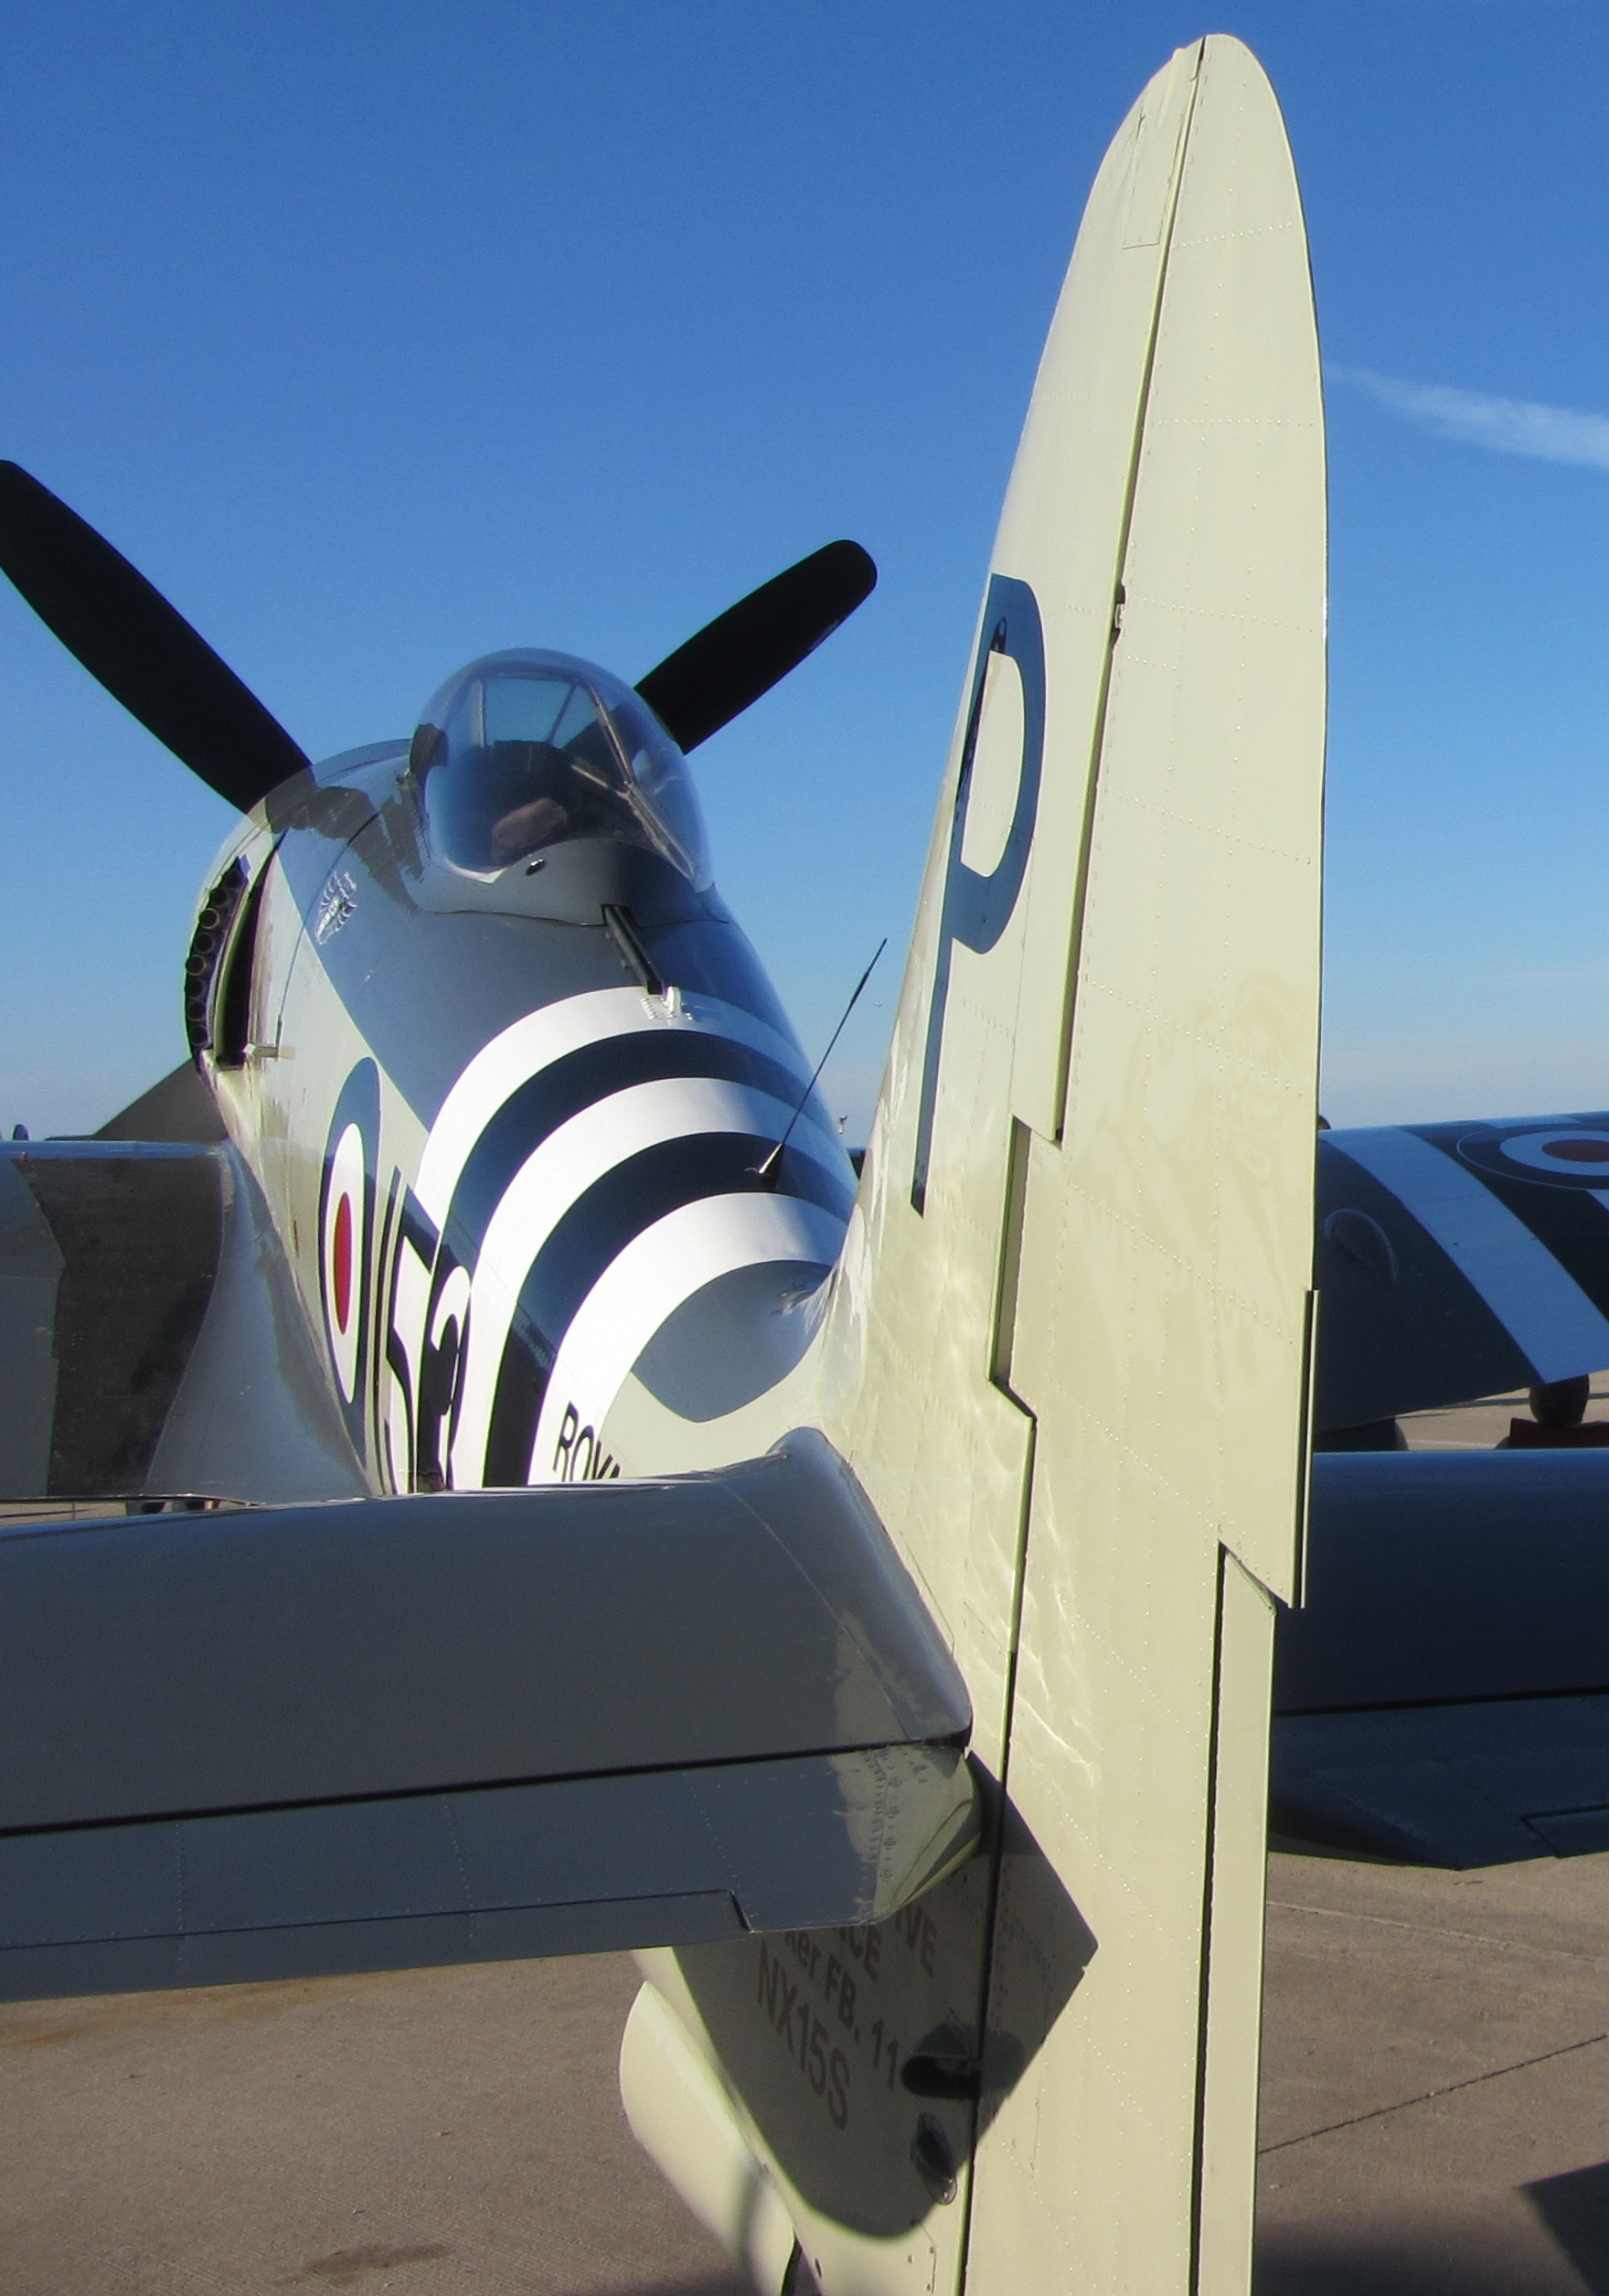 sea fury from behind